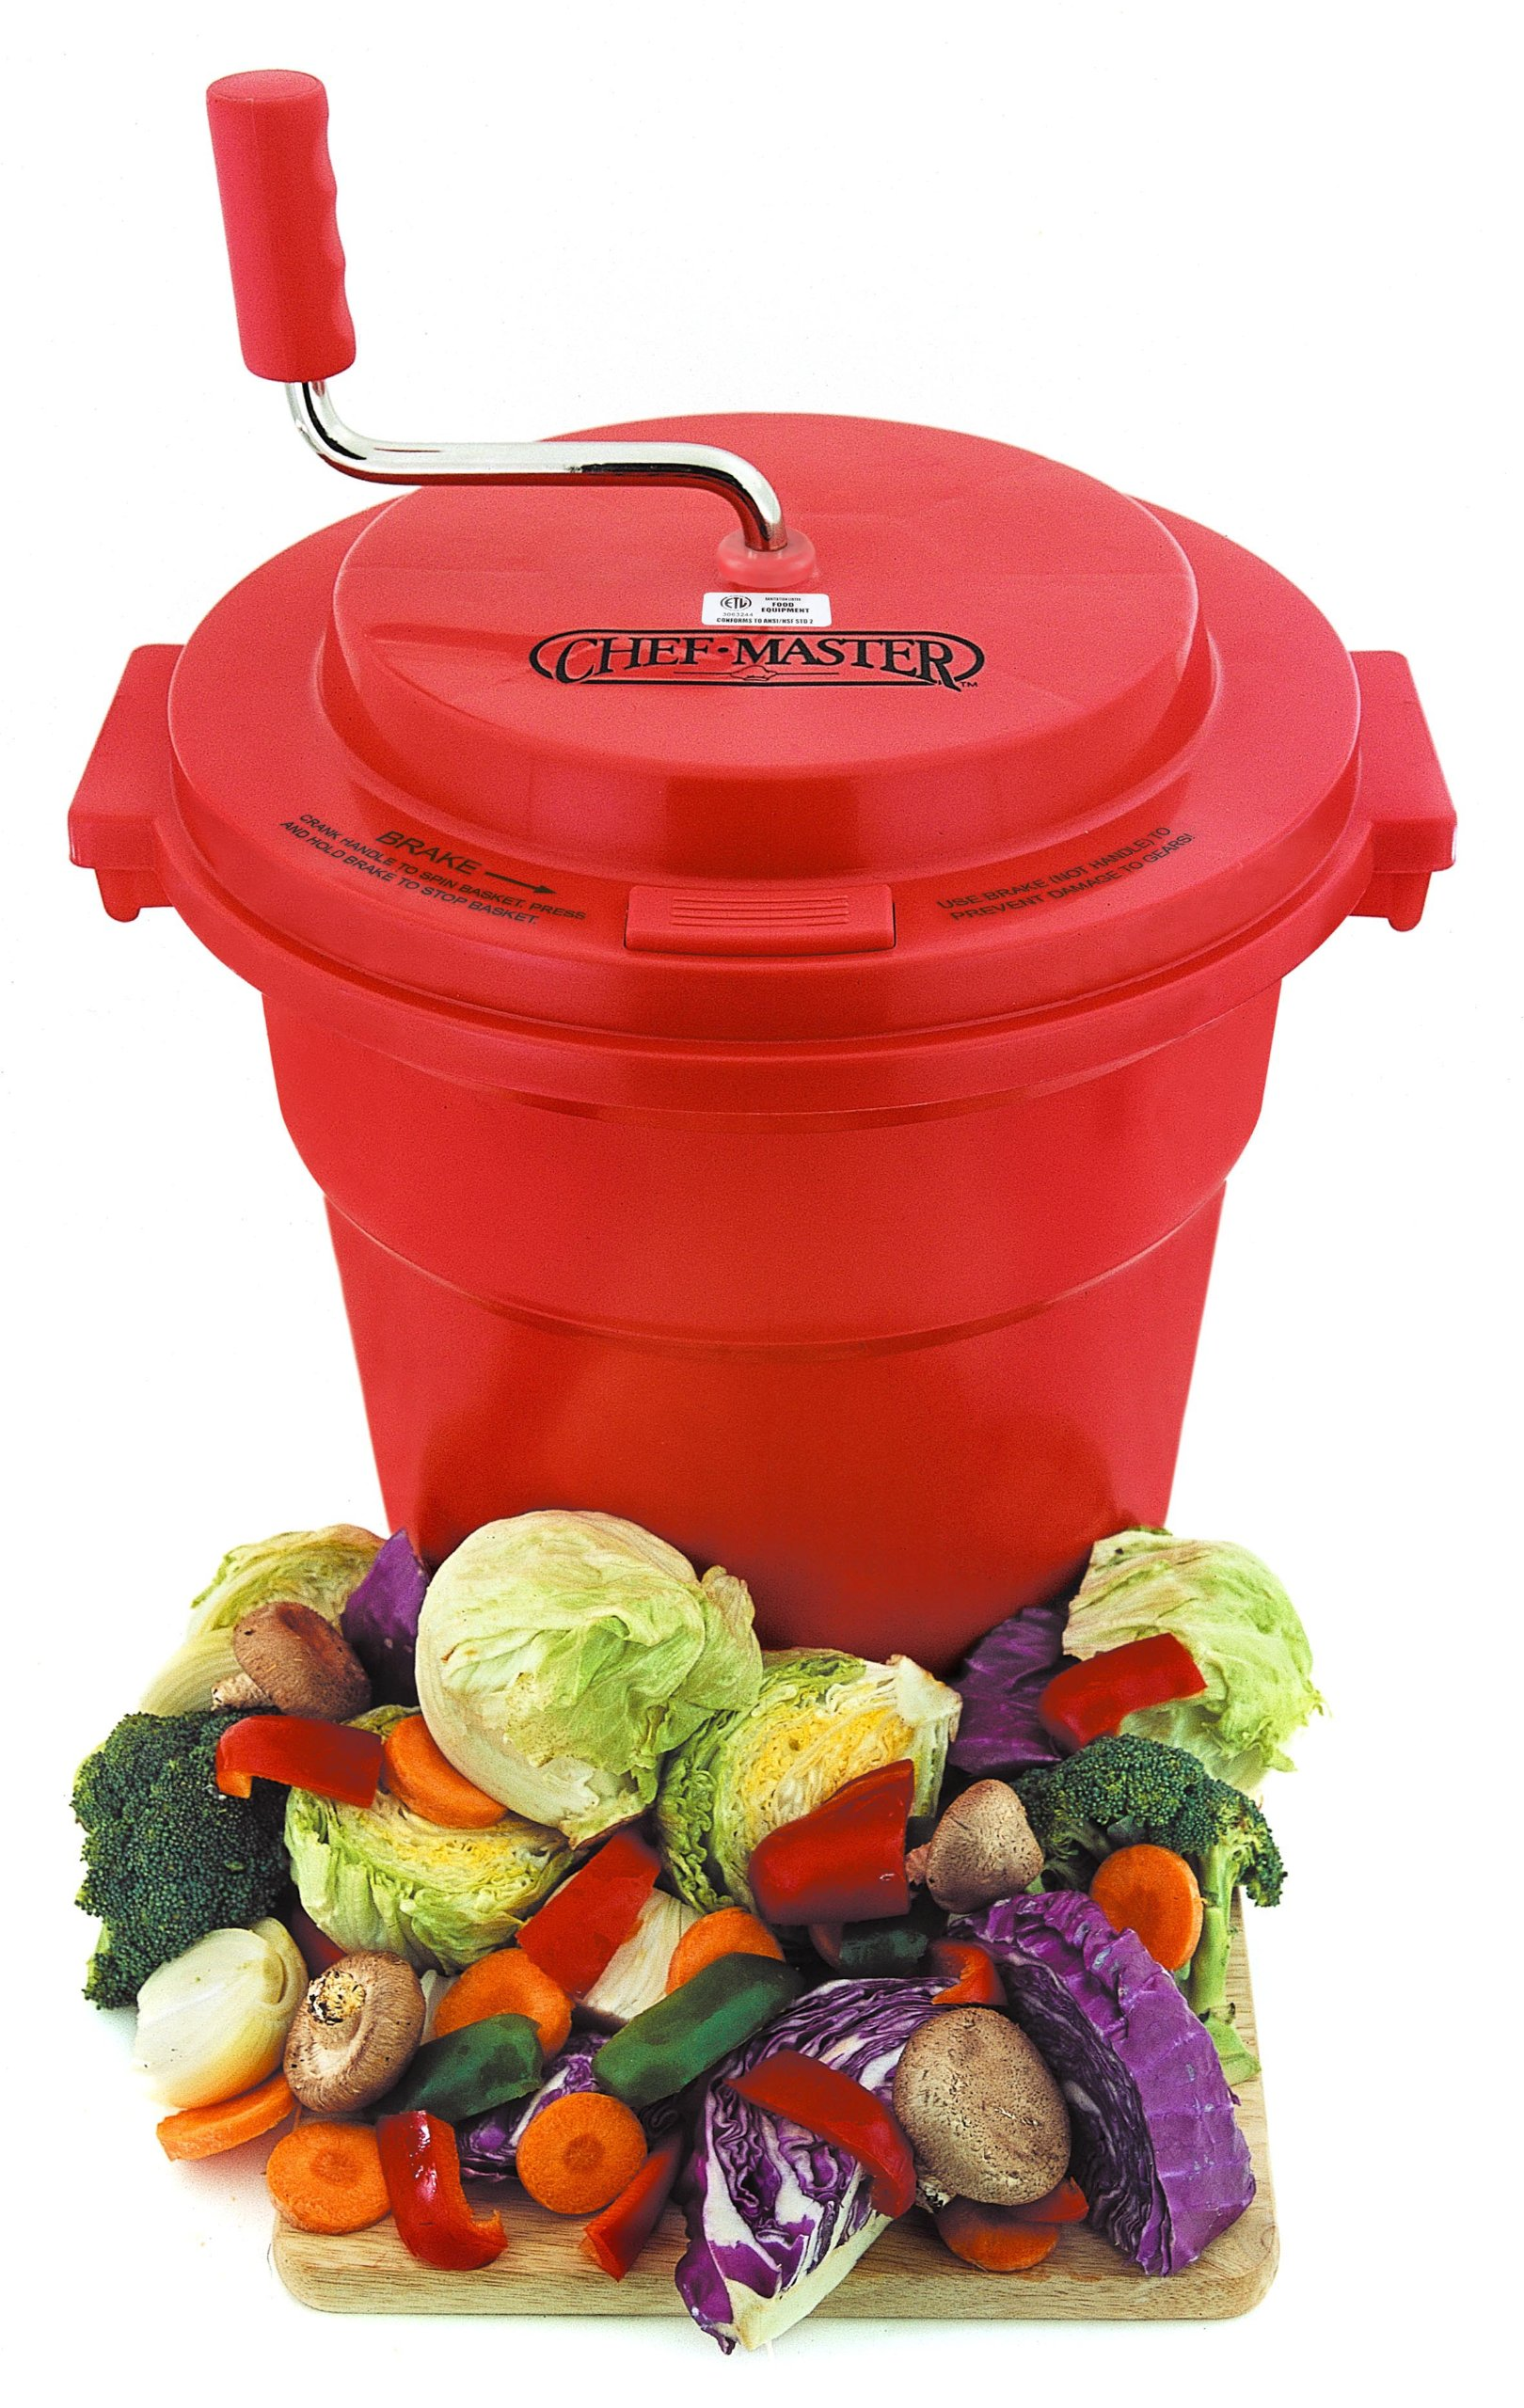 Chef-Master Commercial 5-Gallon Salad Dryer by Chef-Master